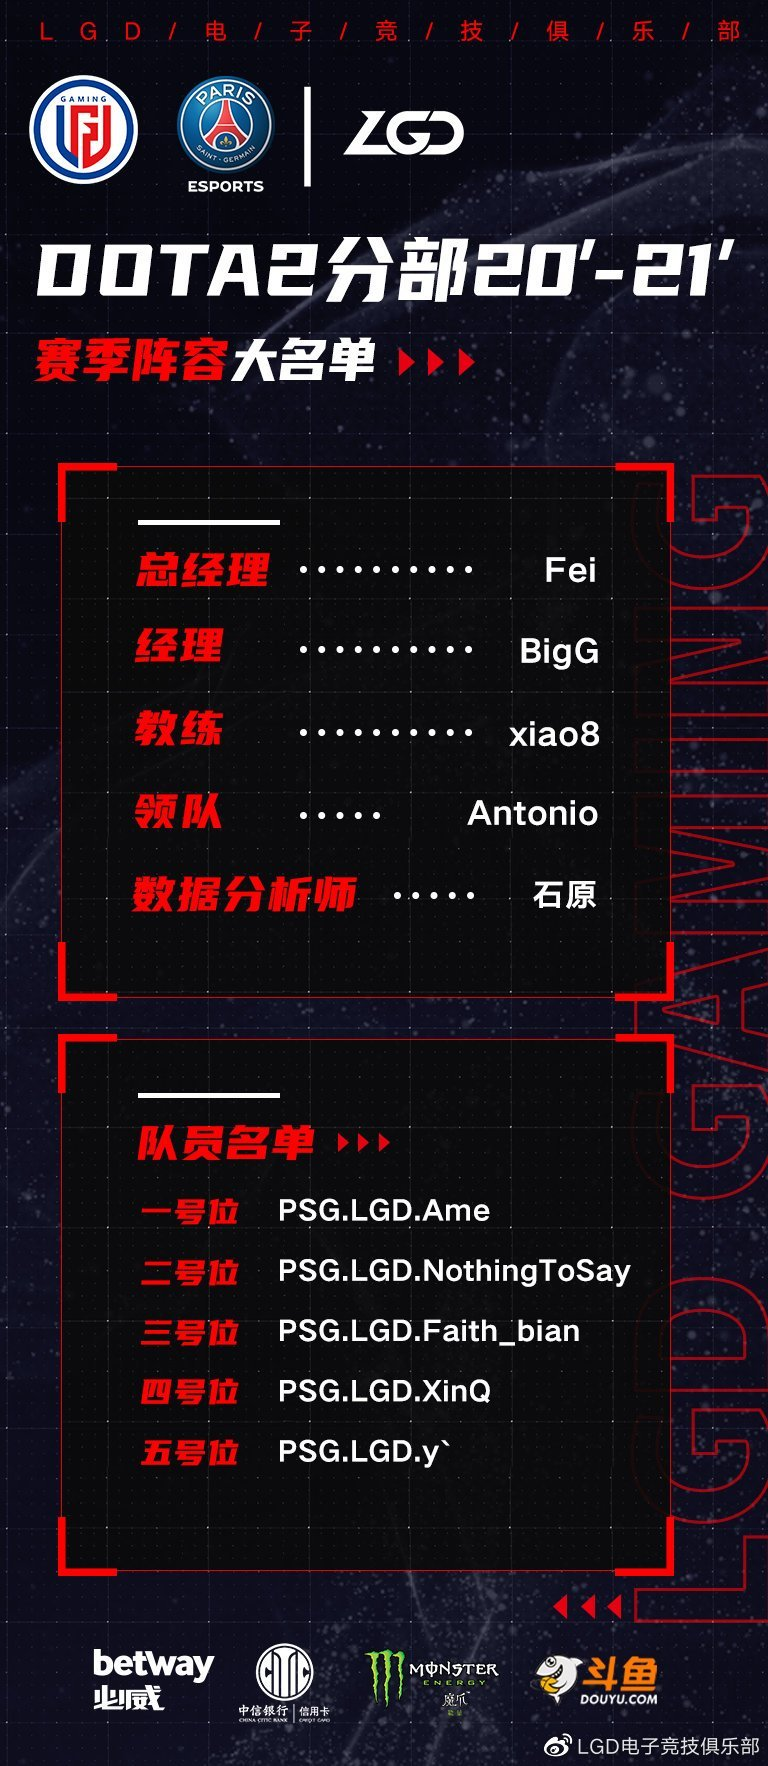 Xiao8 Returns To Psg Lgd With The Majority Of Ehome Players